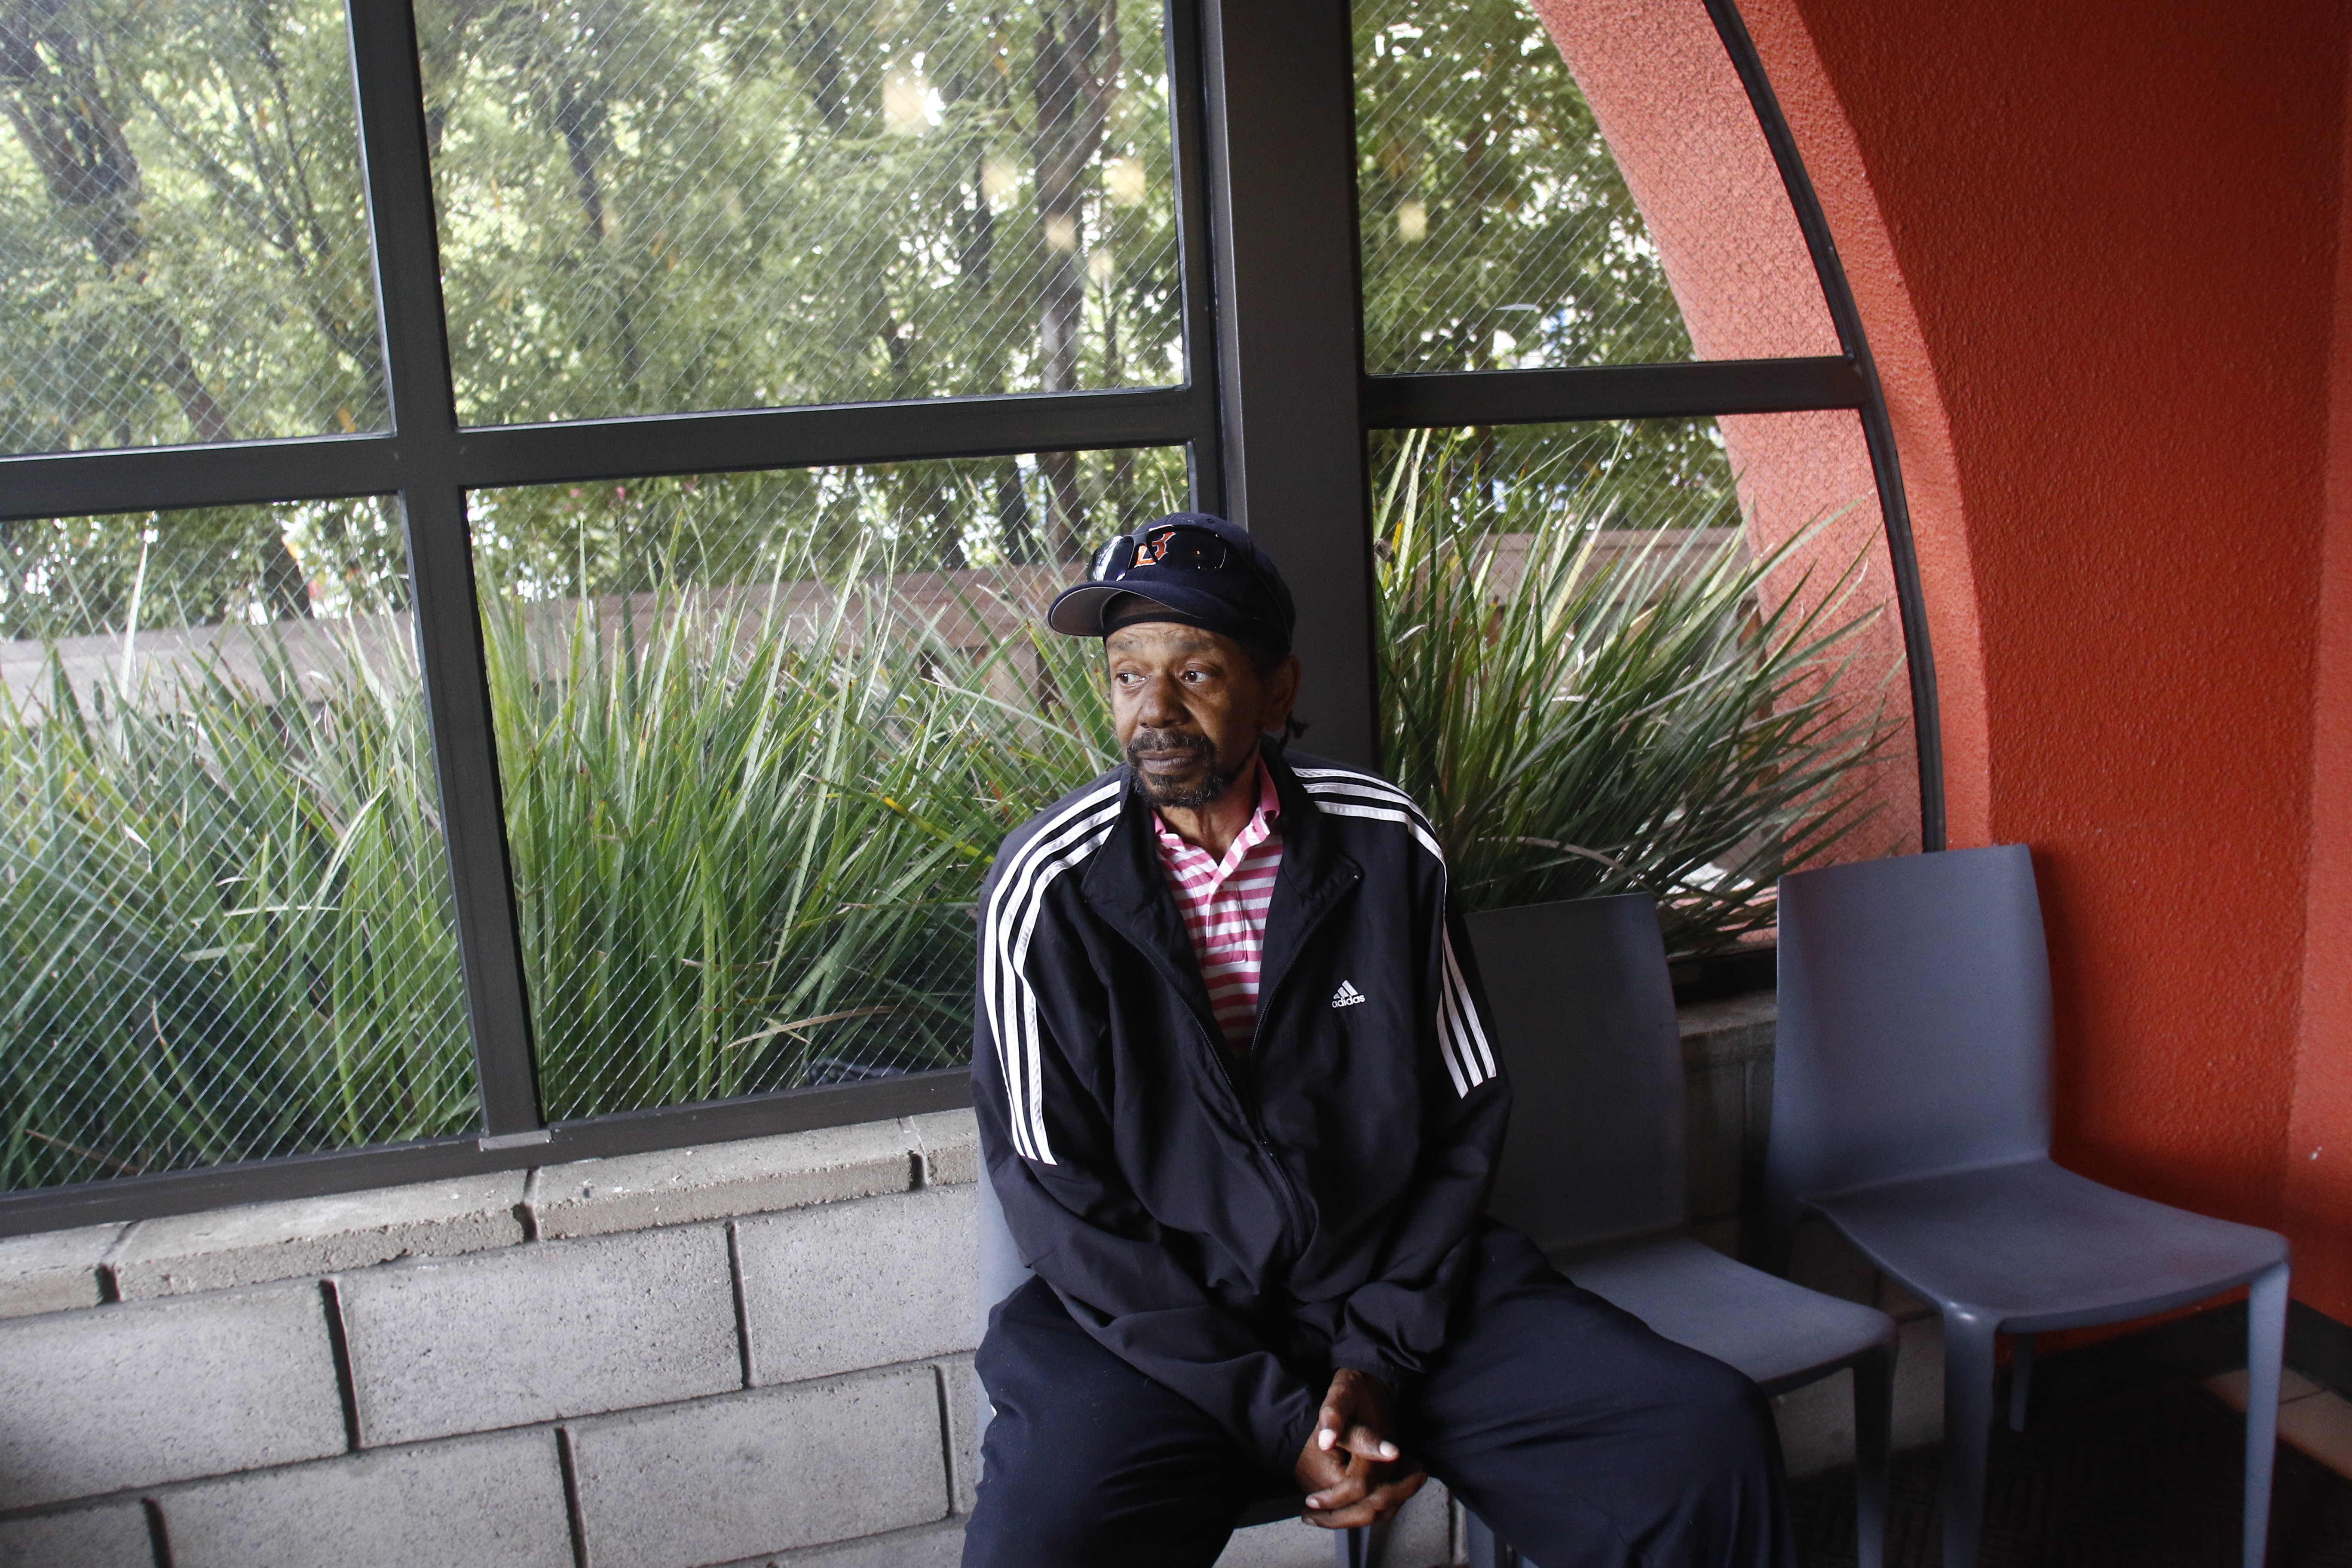 Henry Bostic is a U.S. Air Force veteran.He was homeless for many years while raising his daughter, often staying in temporary shelters. He is on disability and says he's grateful for the Opportunity Center's medical services.